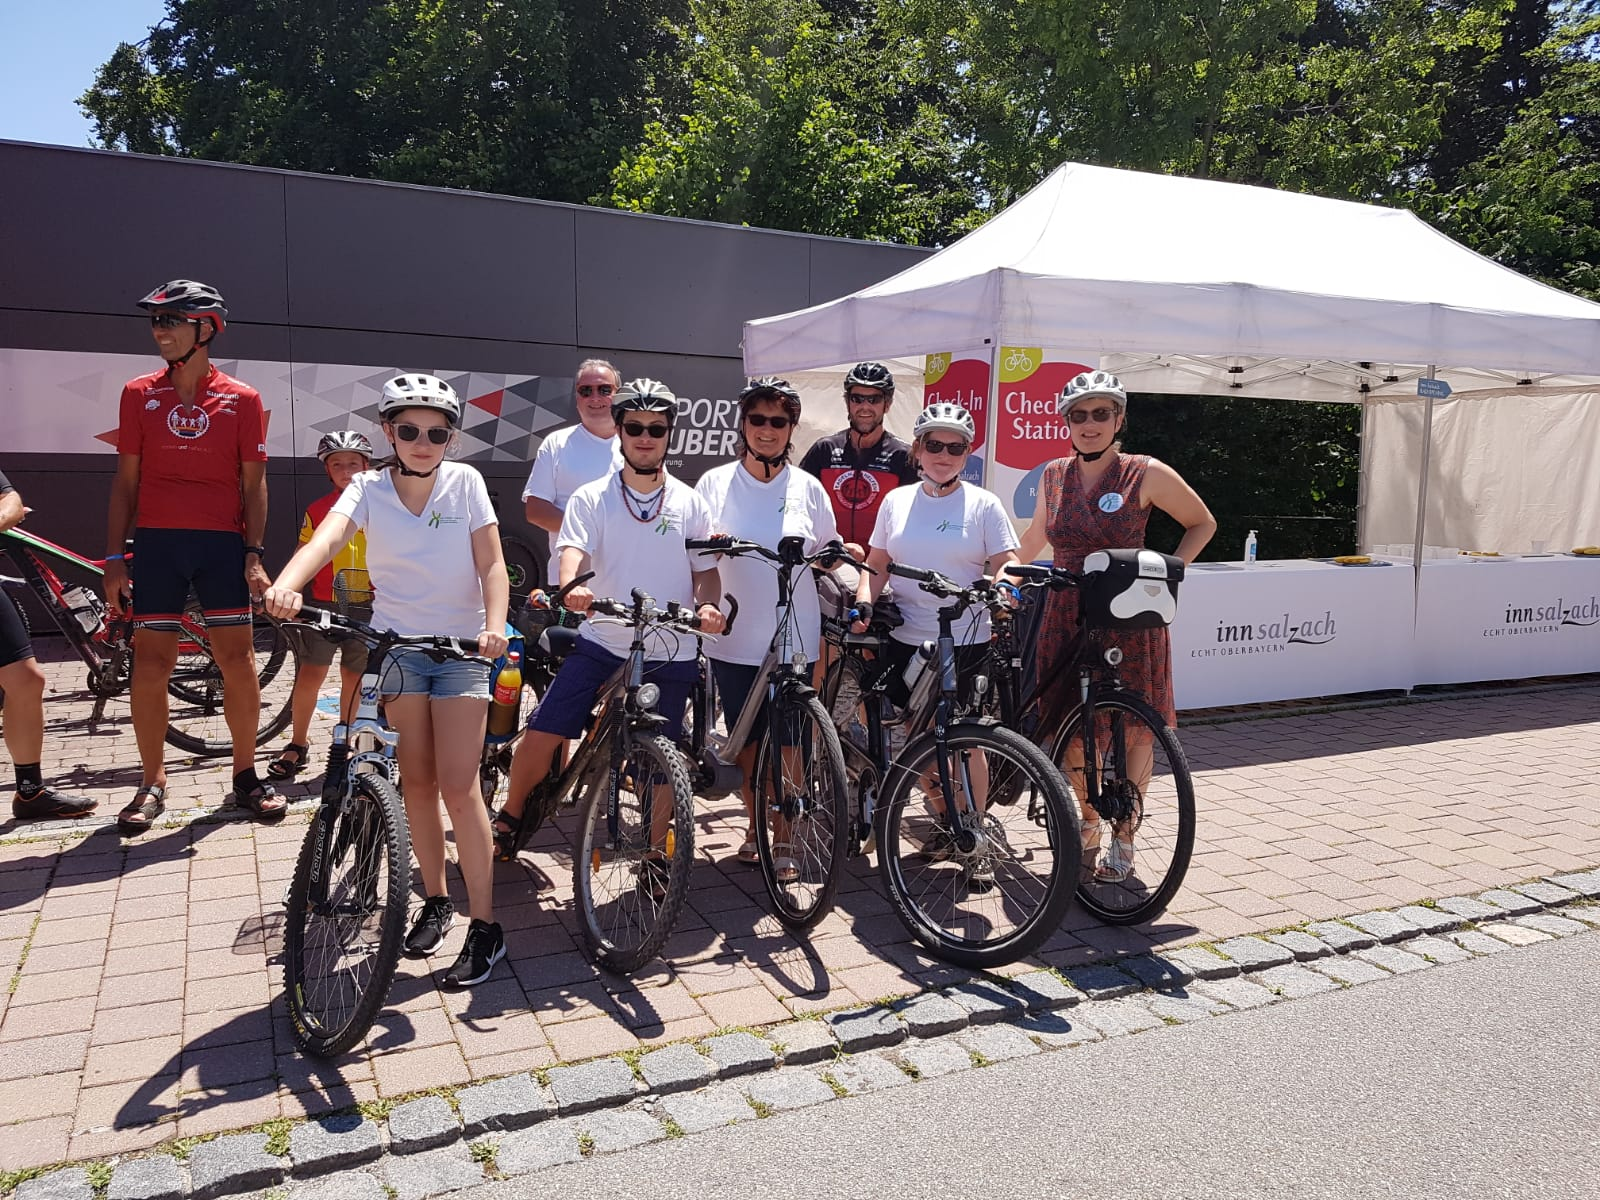 Start VWD beim Inn-Salzach-Rad-Opening am 30.6.2019